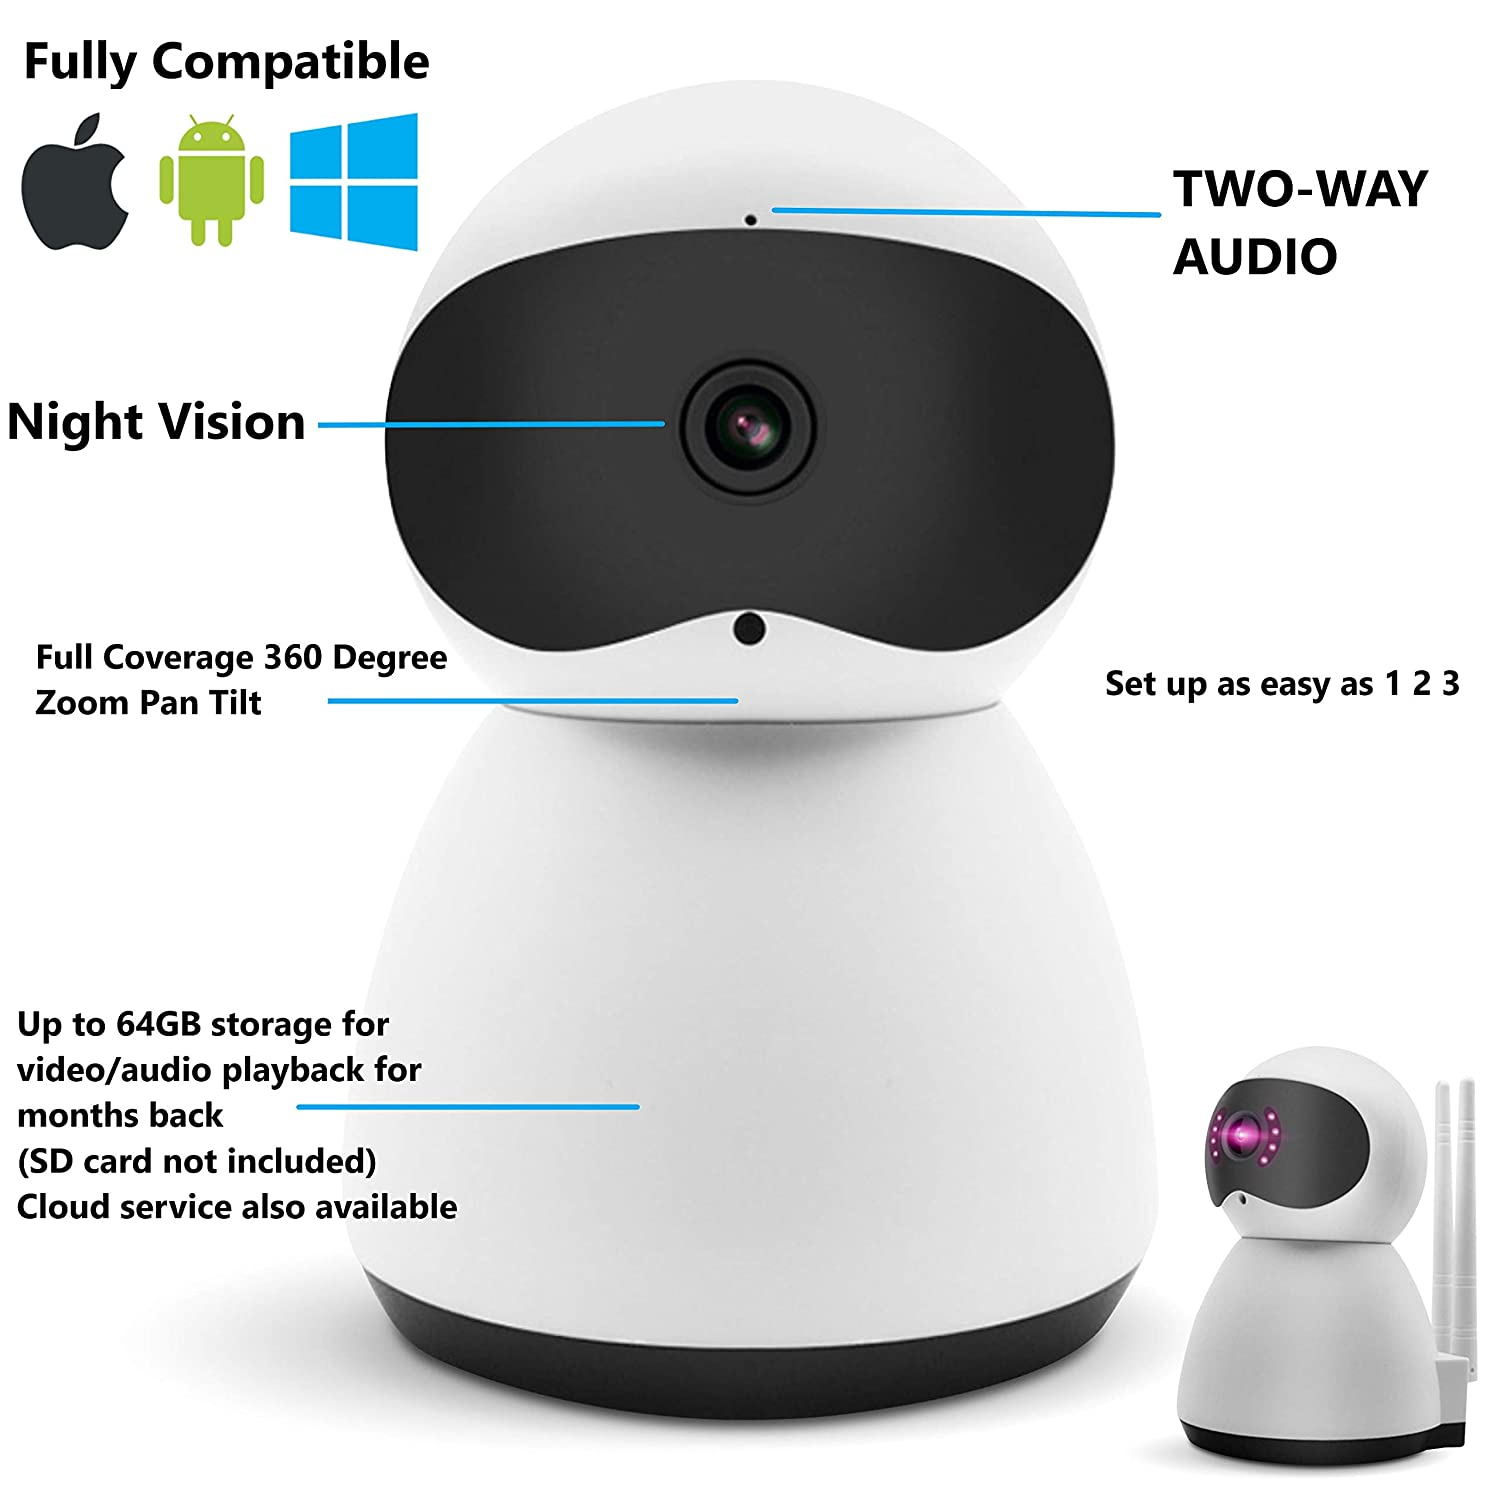 UltraHD 8MP 4K Outdoor PoE IP Camera OEM DS-2CD2185FWD-I 4mm Fixed Lens, Dome Network Security Camera, 3840 X 2160, up to 98ft IR Night Vision, Smart H.265 , SD Card Slot, WDR DNR, IP67 IK10, ONVIF